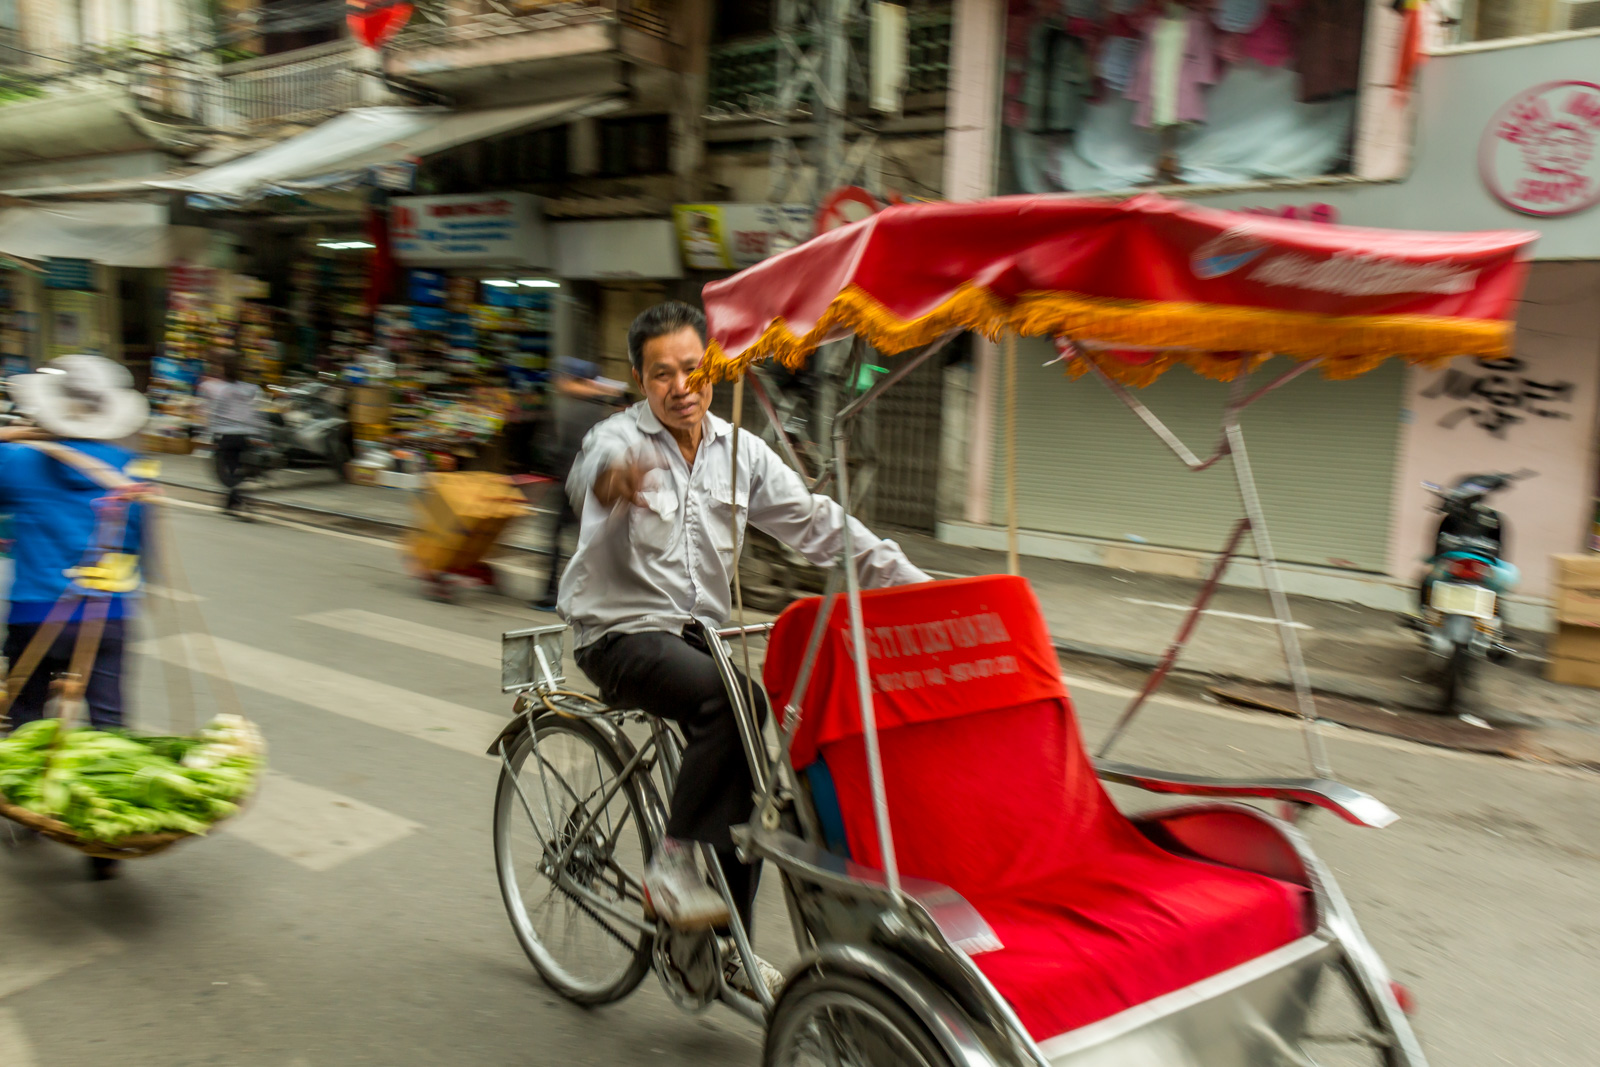 Cyclo drivers are eager to get you to sit down.